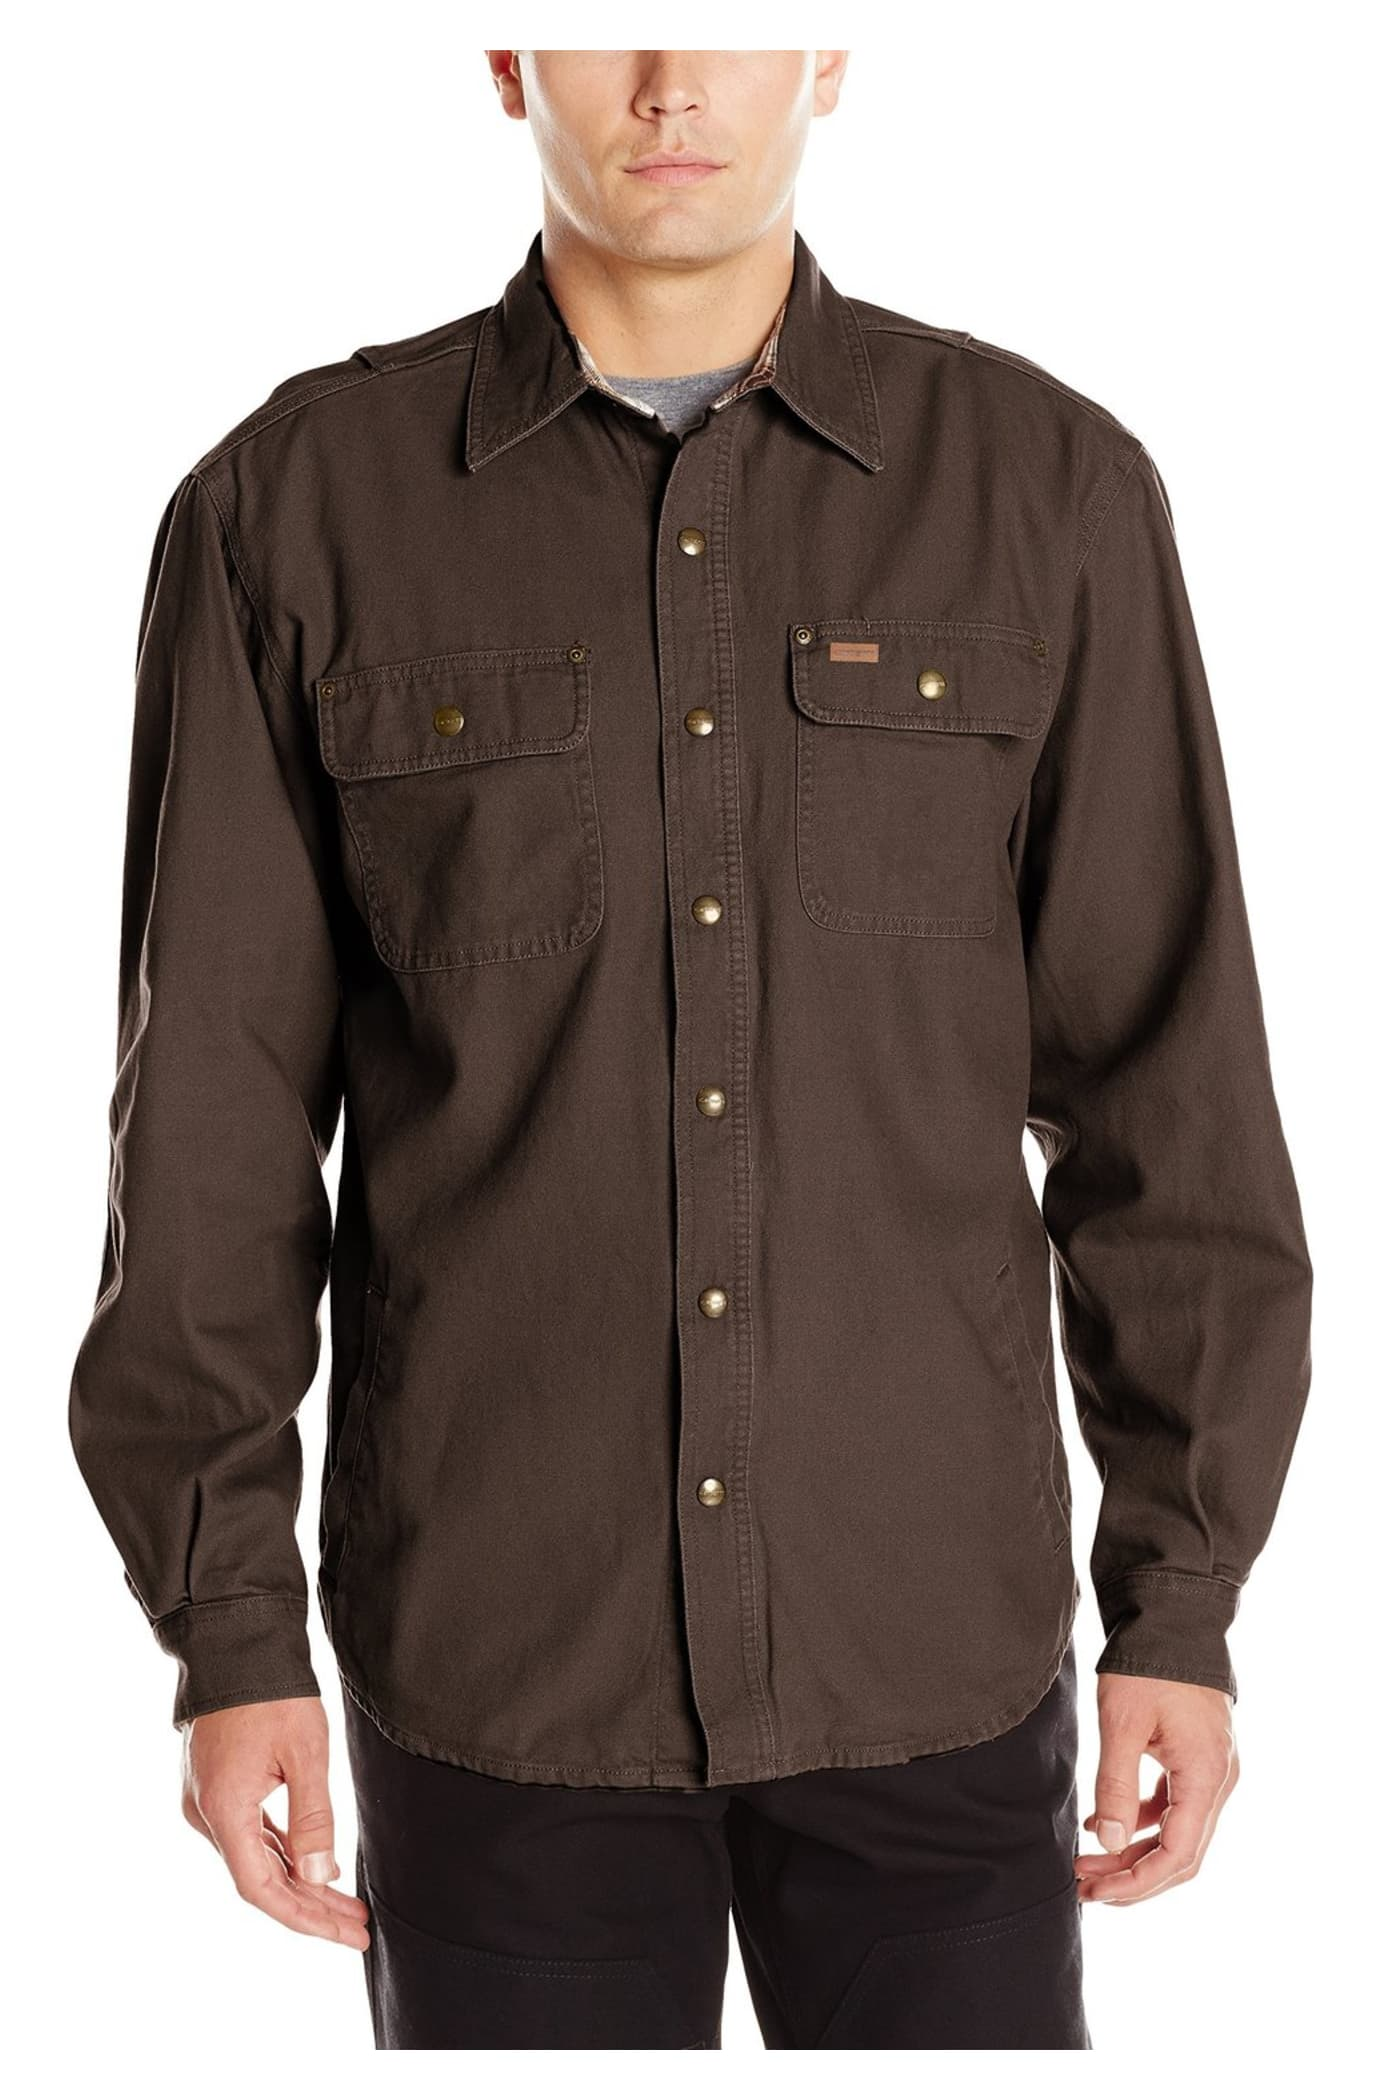 Carhartt men 39 s weathered canvas shirt jacket dark brown xl for Black brown mens shirts